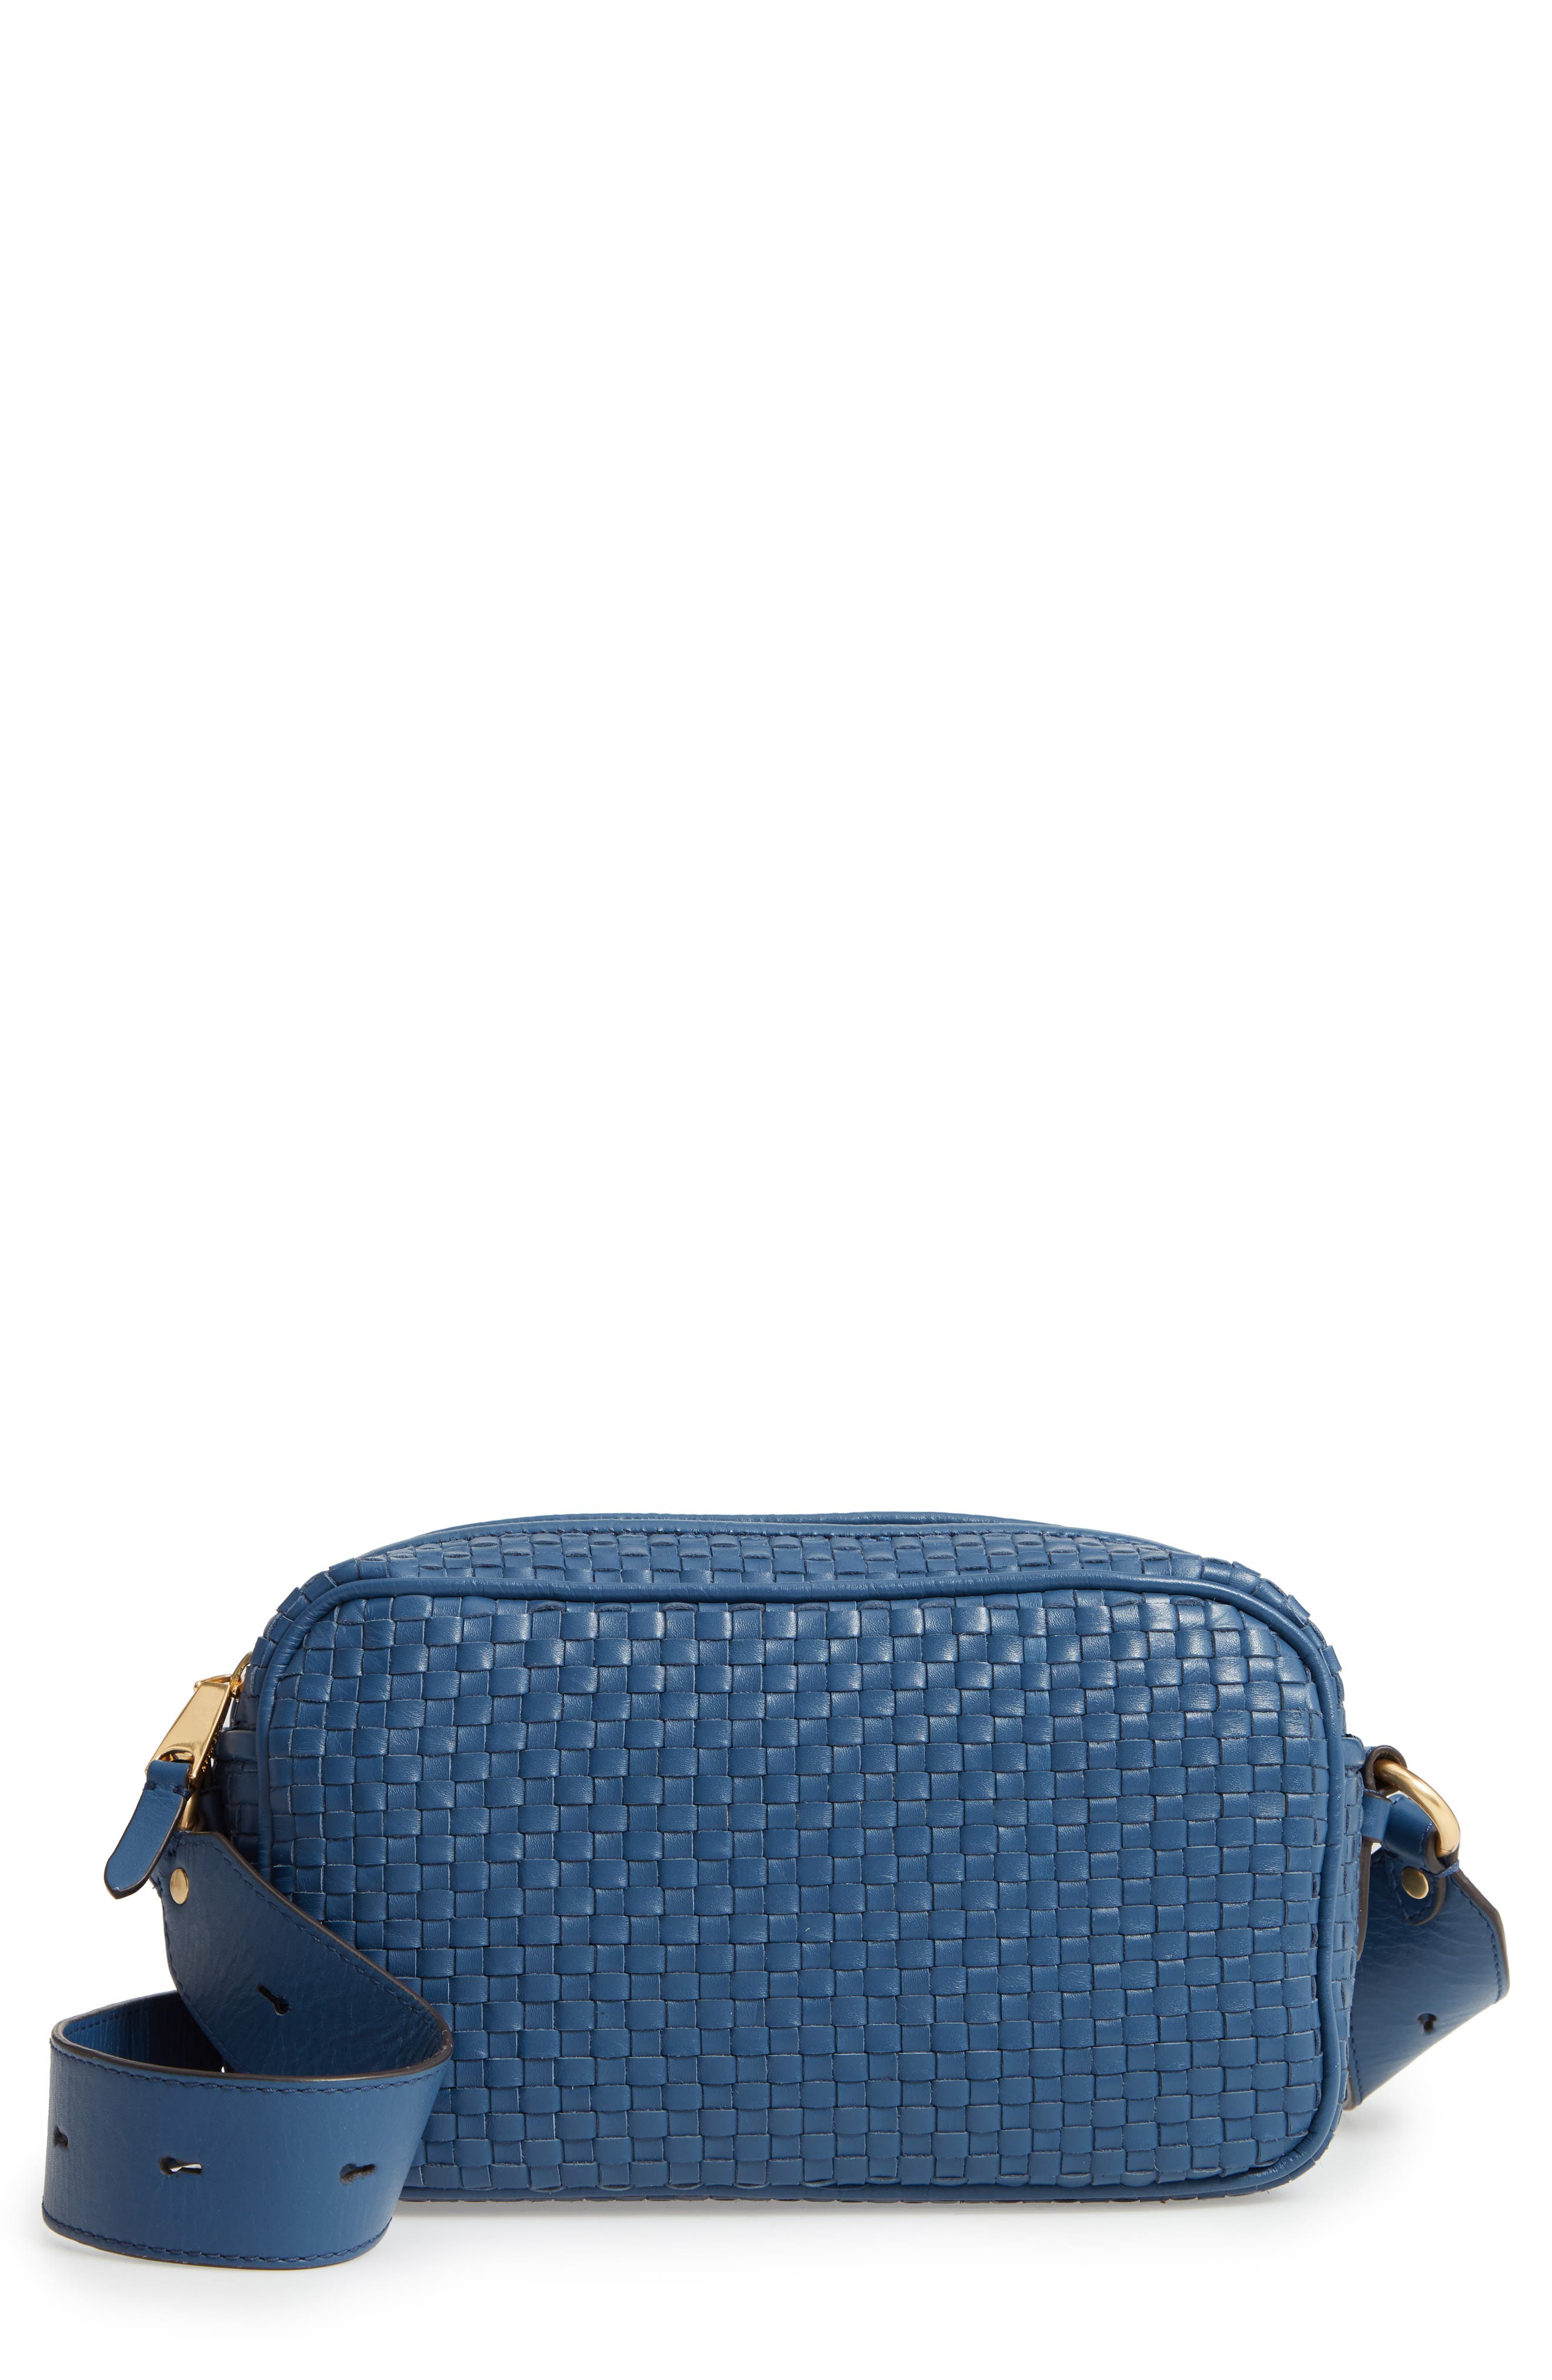 Zoe RFID Woven Leather Camera Bag,                         Main,                         color, Navy Peony